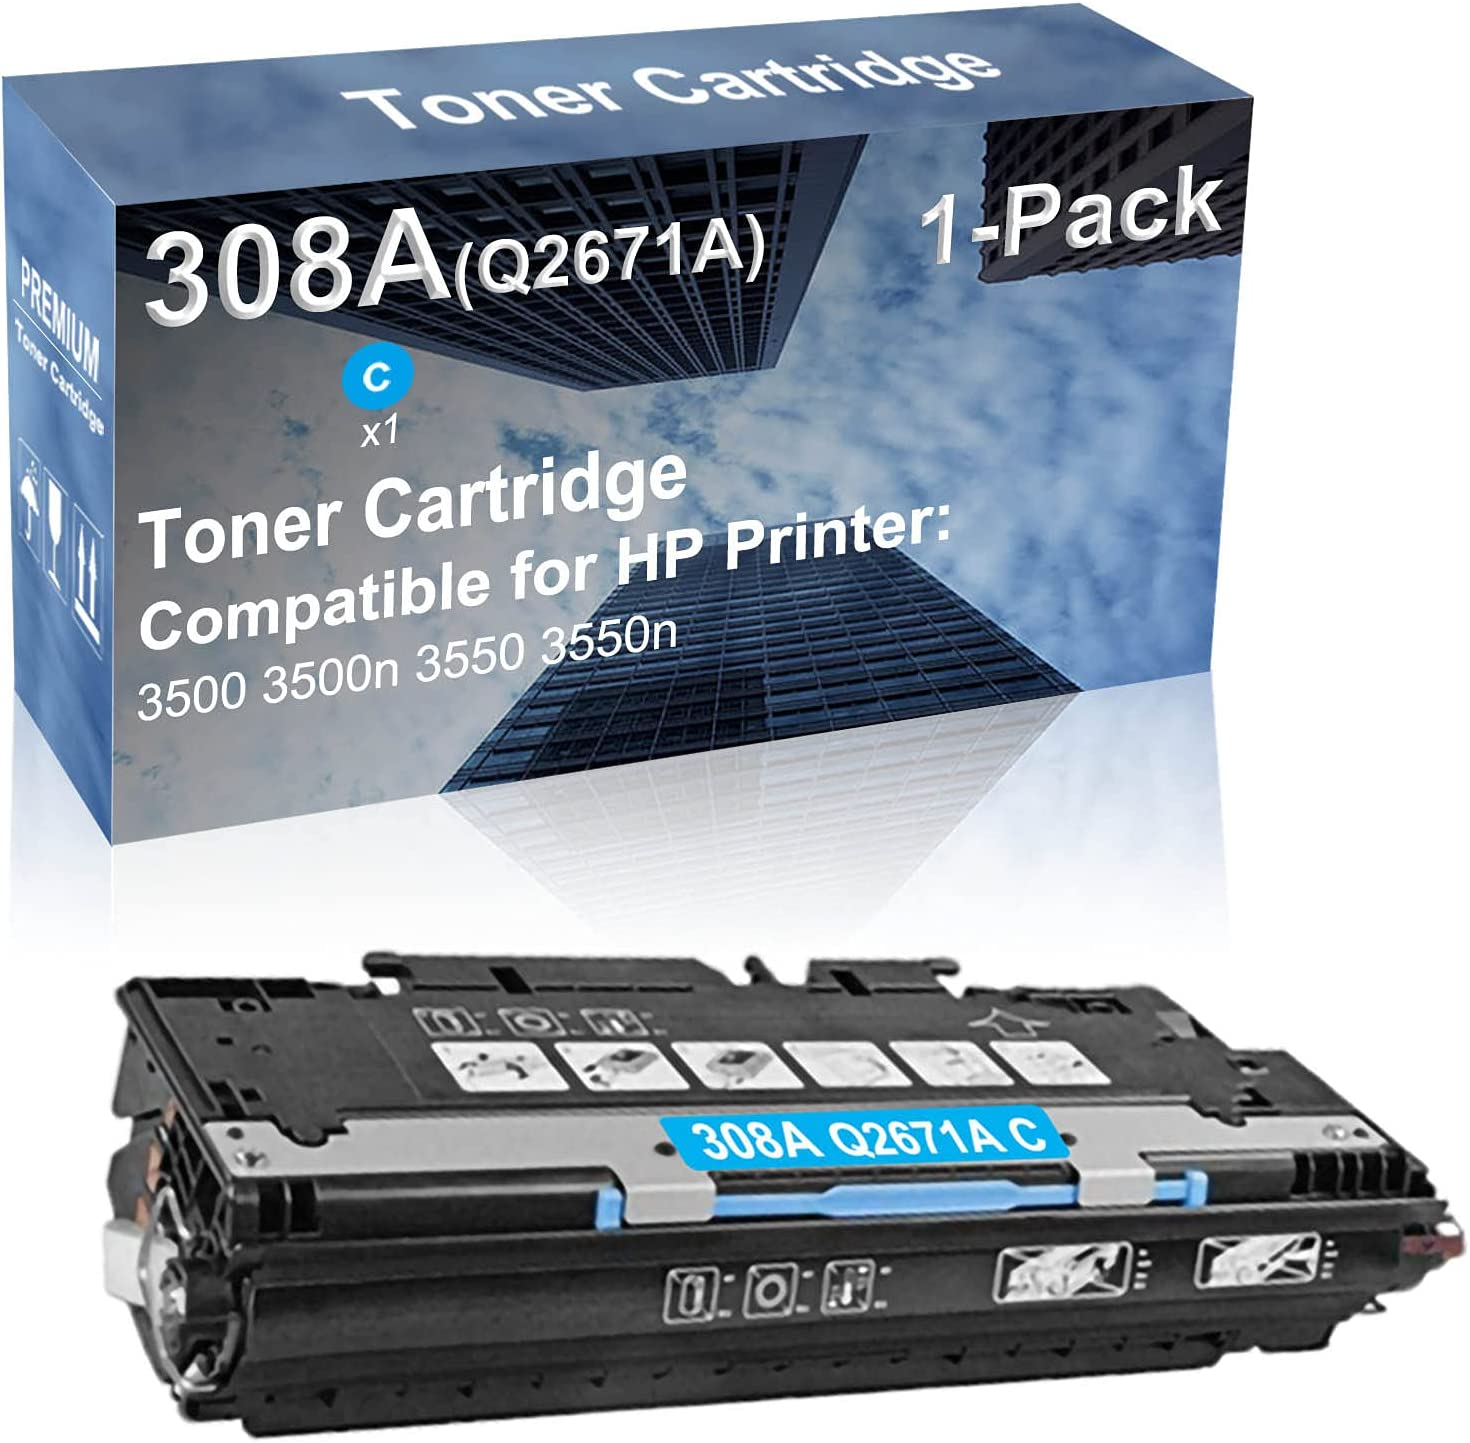 1-Pack (Cyan) Compatible 3500 3500n 3550 3550n Printer Toner Cartridge High Capacity Replacement for HP (Q2671A) 308A 309A Toner Cartridge